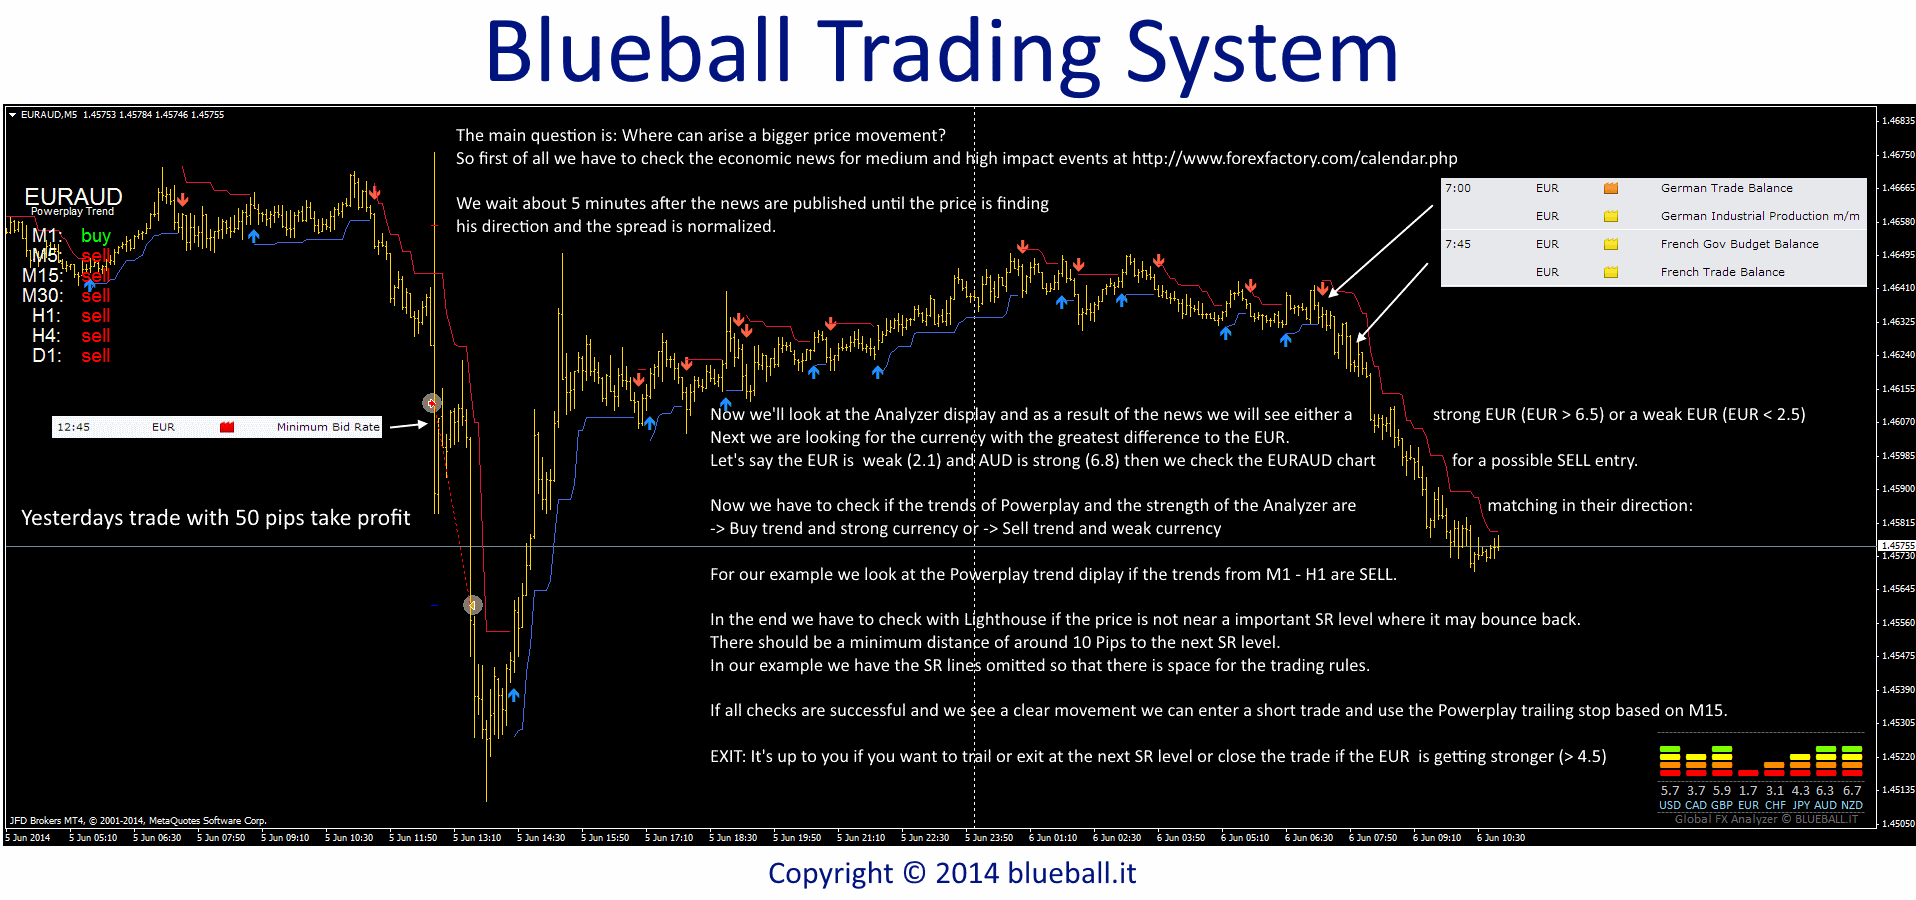 Dear Blueball Traders,